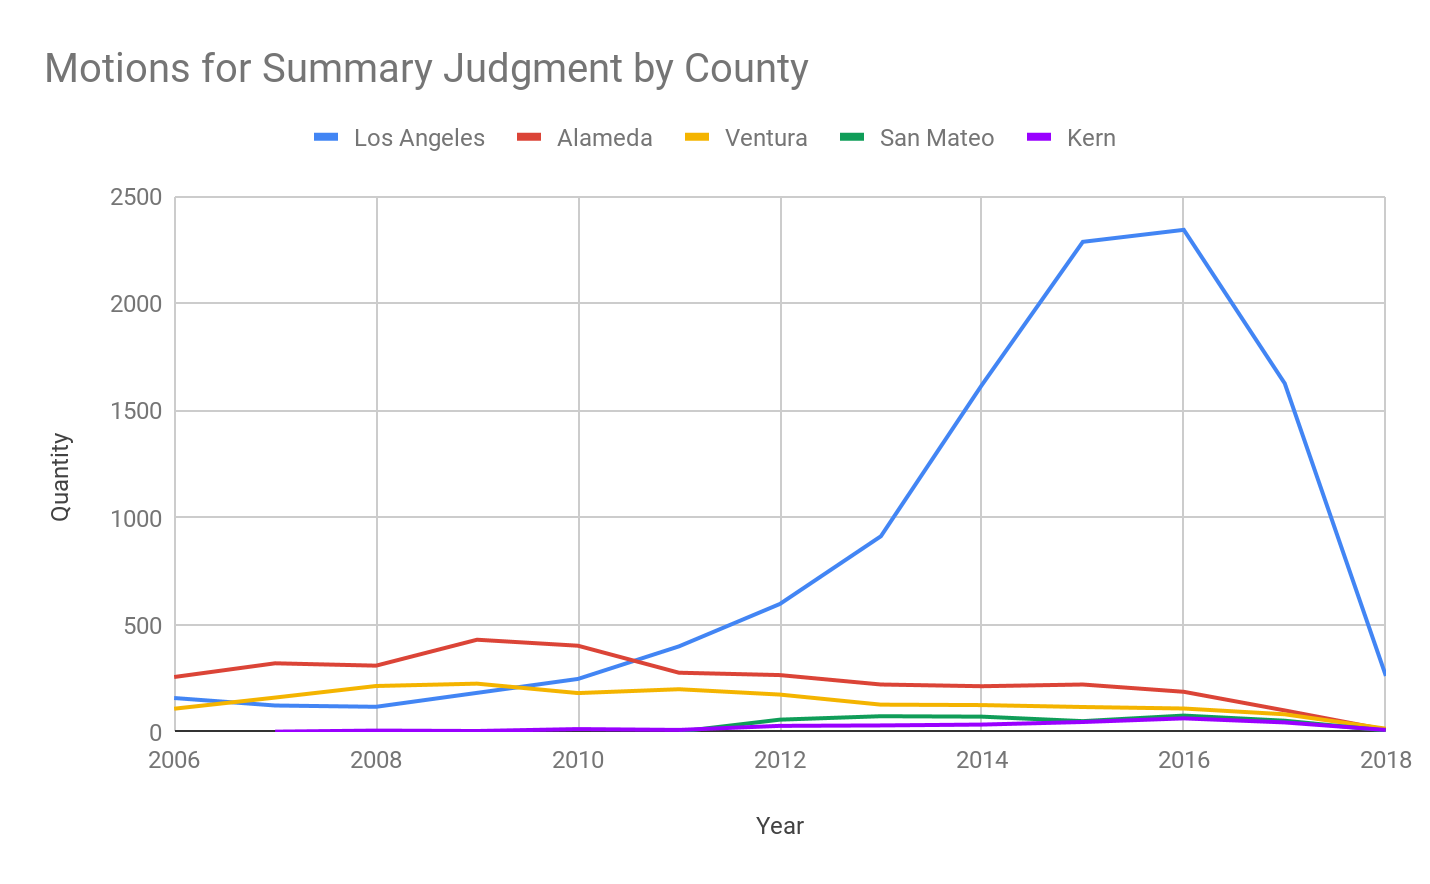 Graph of Motions for Summary Judgment by County